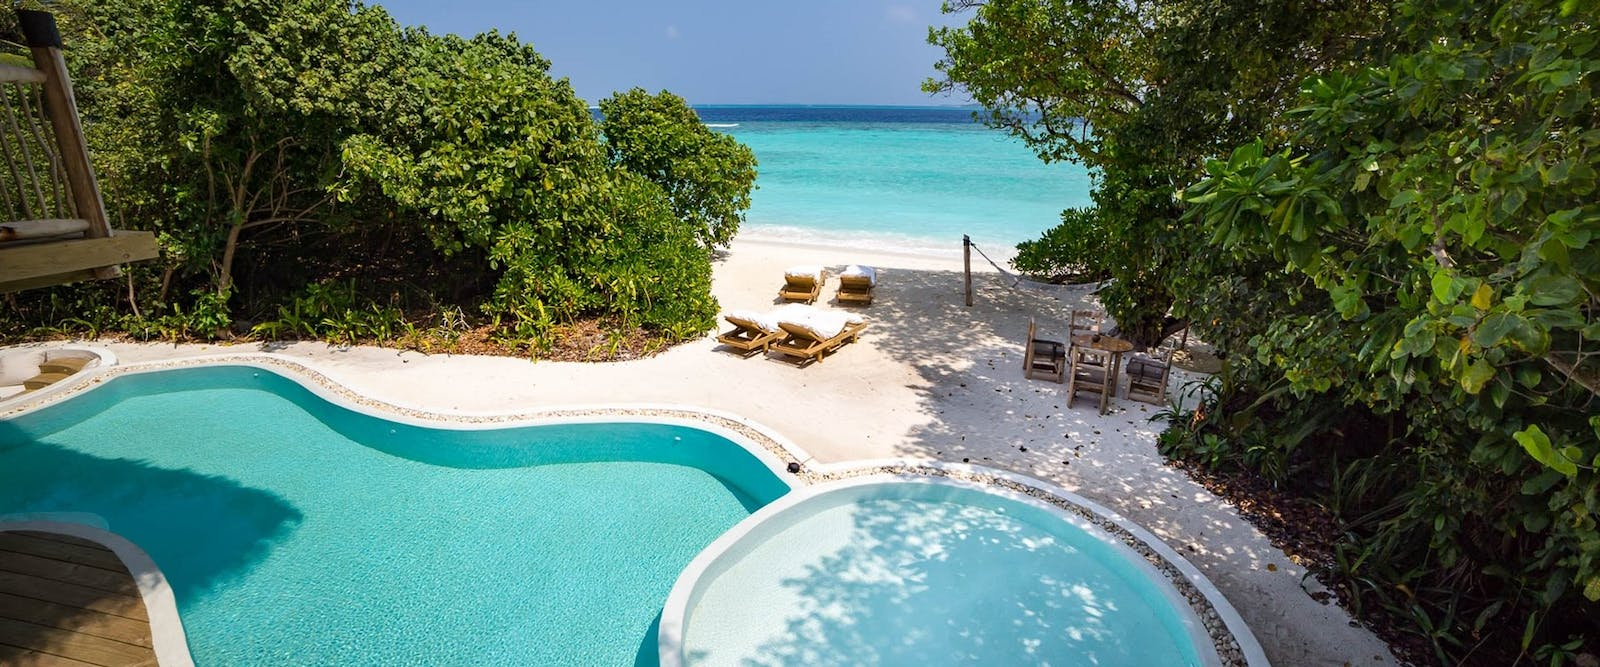 3 Bedroom Villa Suite with Pool at Soneva Fushi, Maldives, Indian Ocean